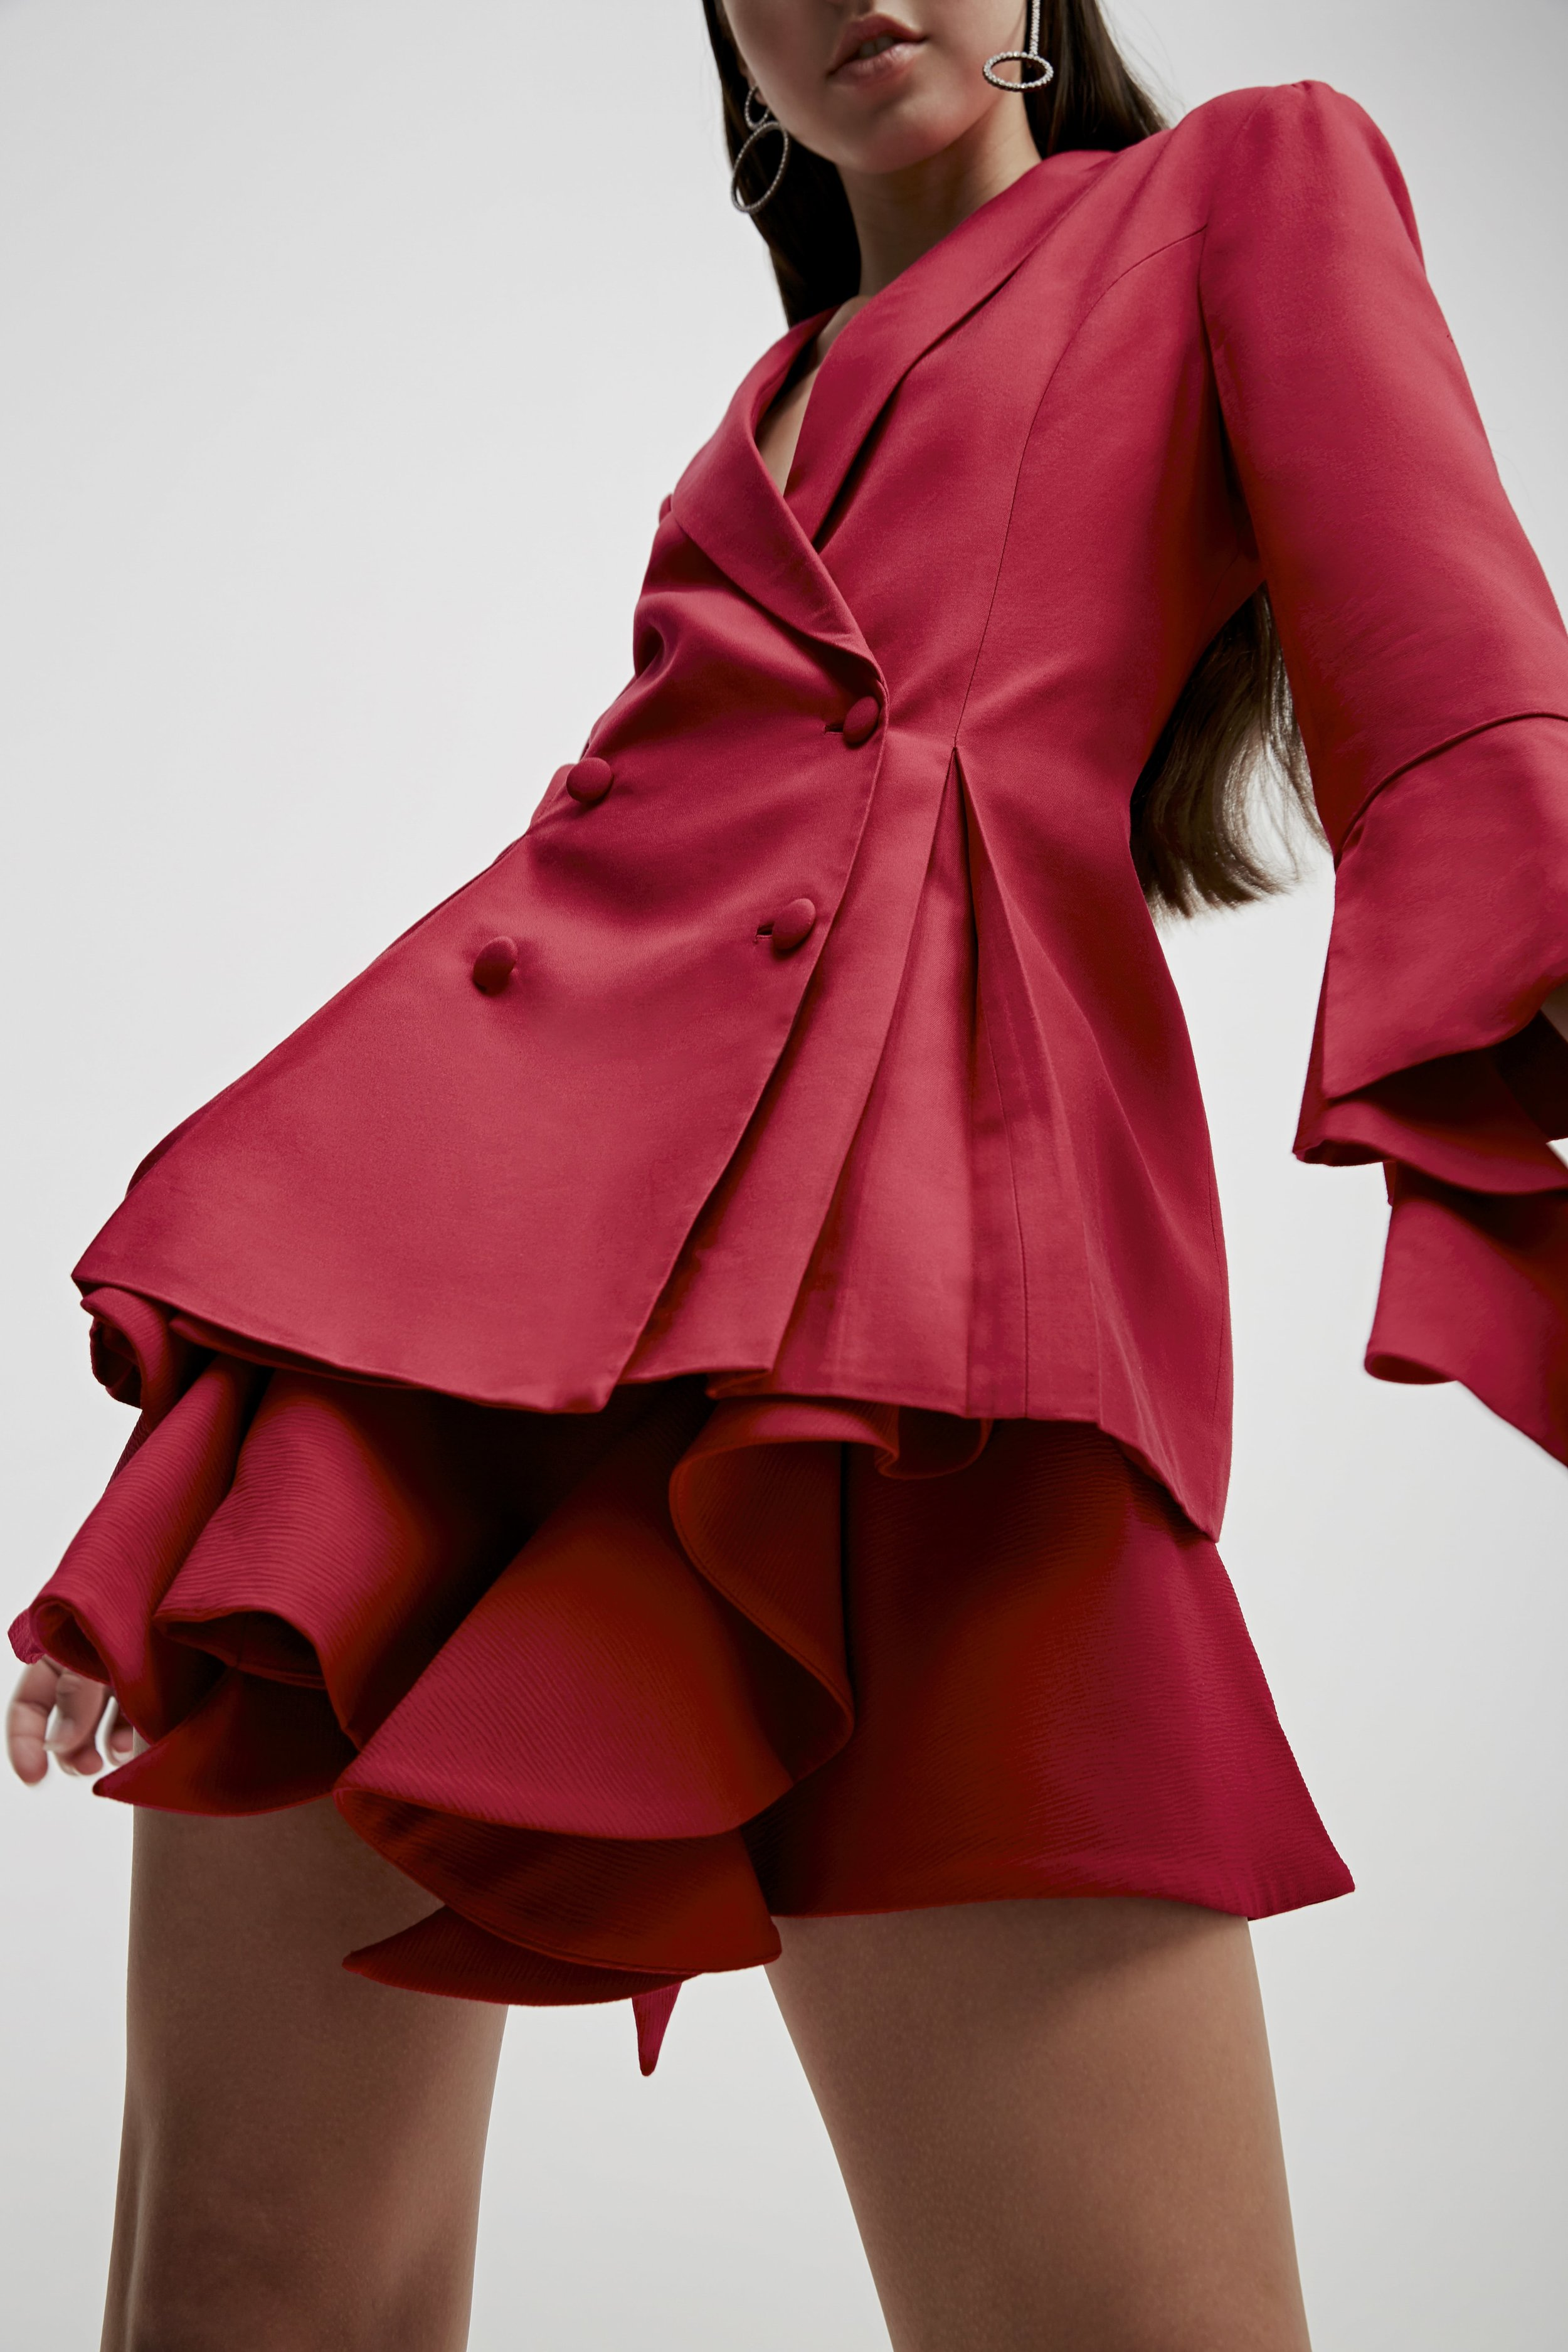 C/MEO We'll Be Alright Blazer + Heart Commands Skirt